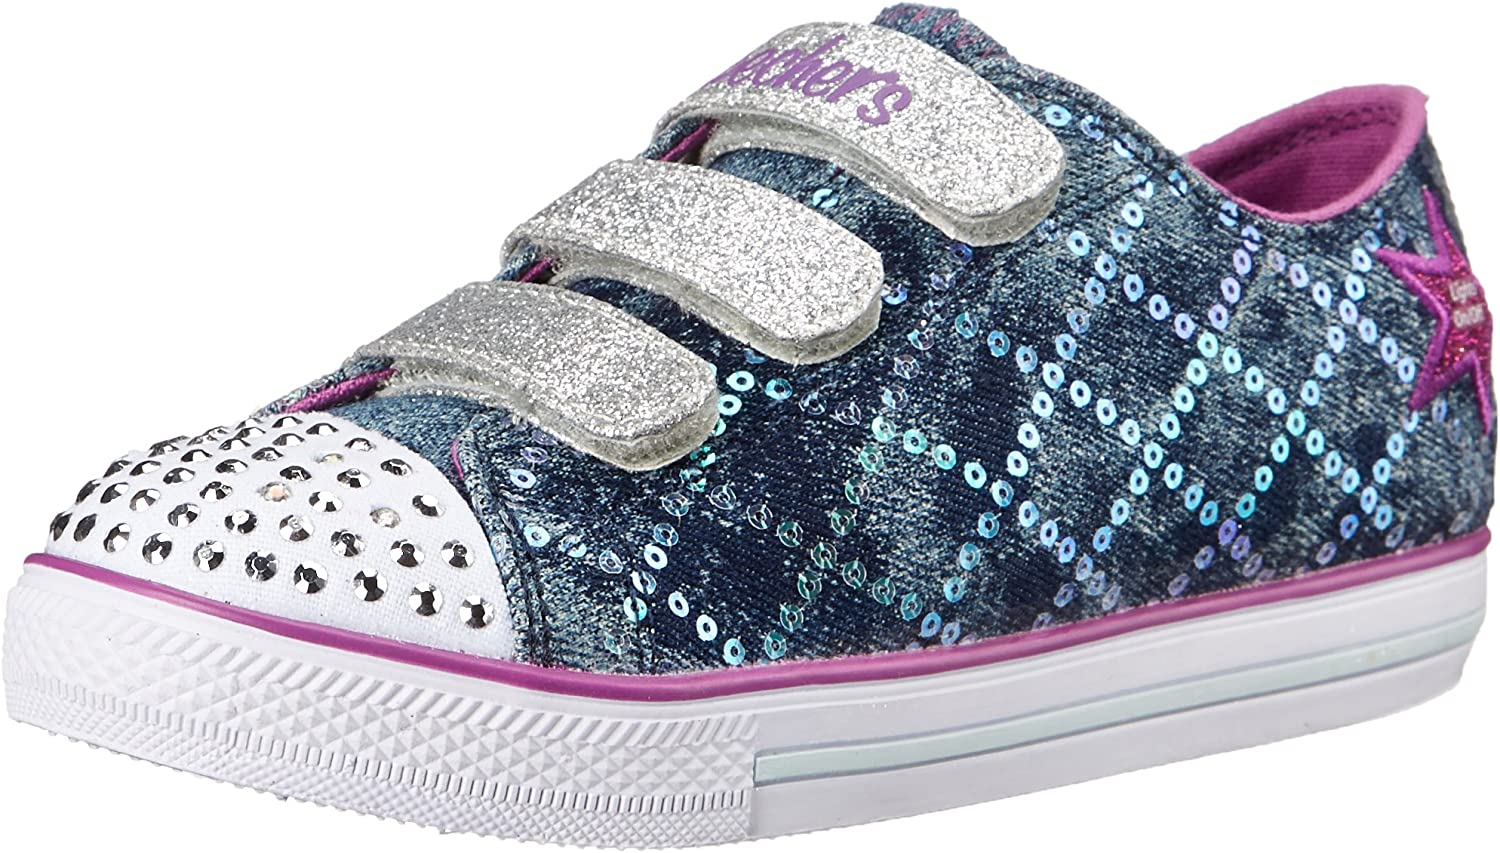 Skechers Kids Twinkle Toes-Chit Chat